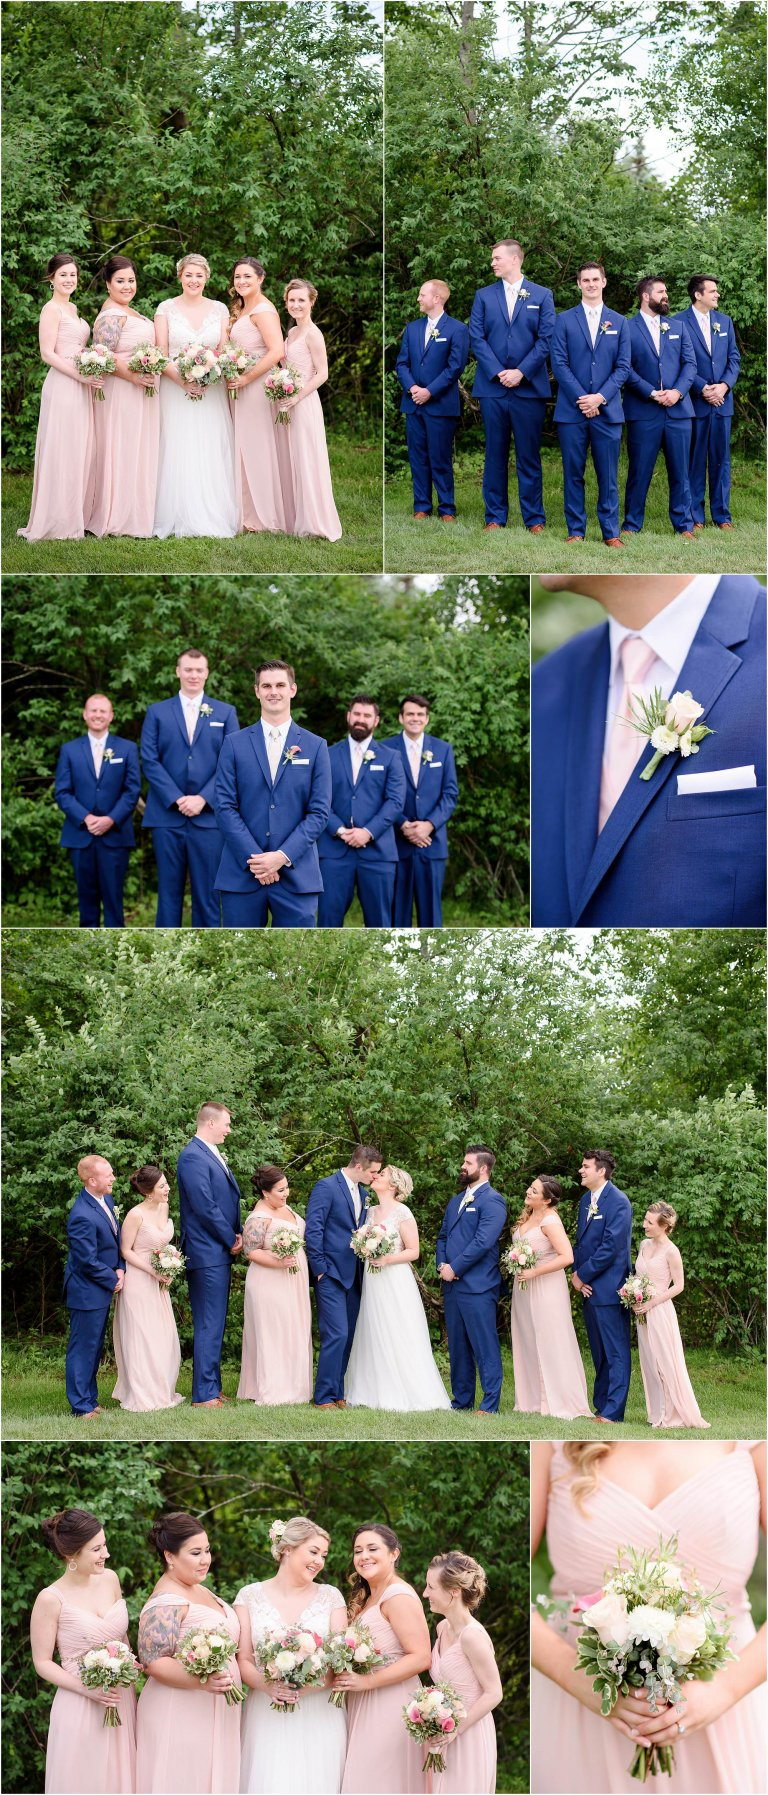 Clarks Summit PA wedding photographer Crystal Satriano captures images of the entire bridal party in blue and blush pink.